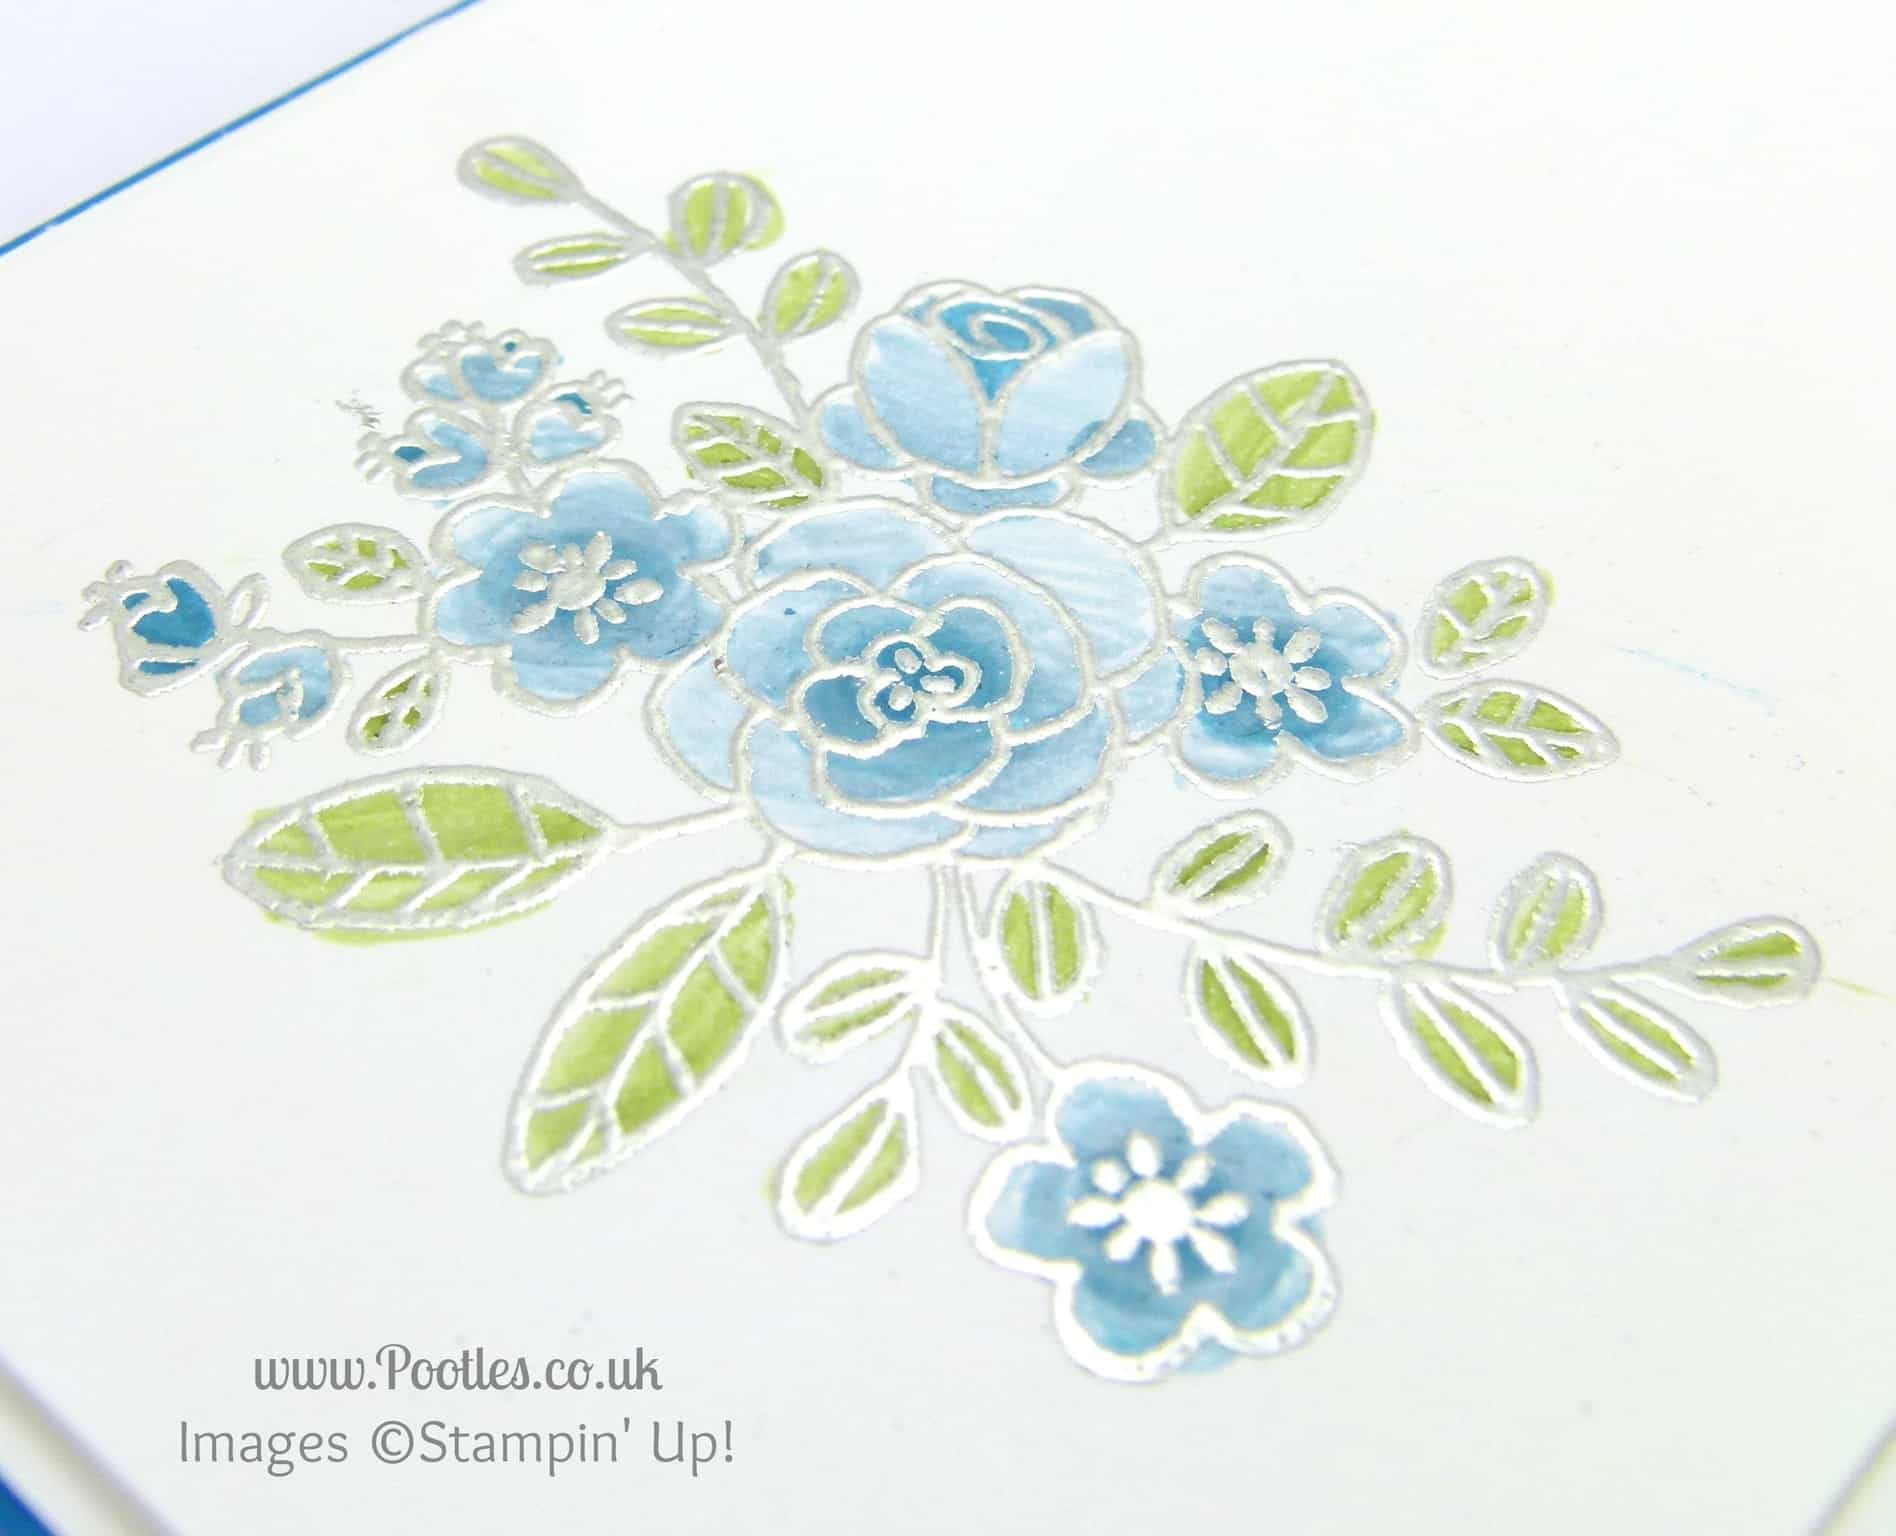 Stampin' Up! UK Demonstrator Pootles - So Very Grateful for.... Heat Embossing Of Course I am! Detail